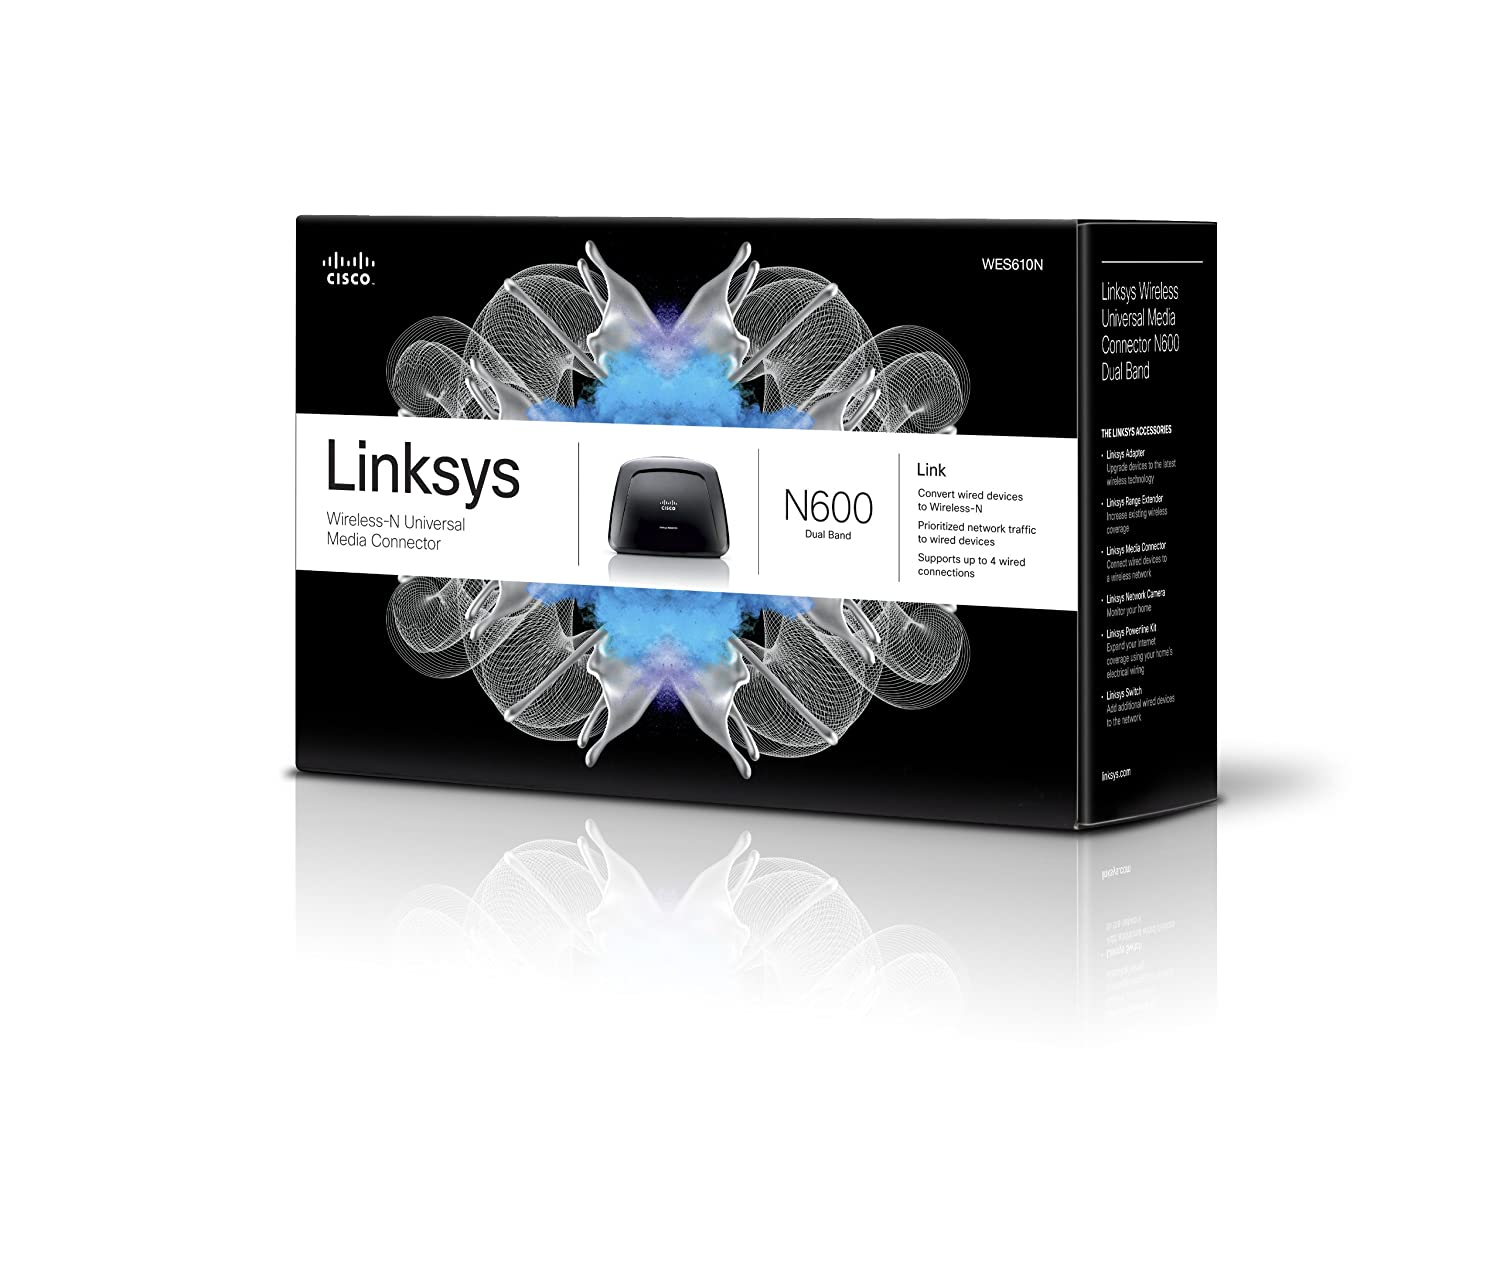 LINKSYS WUMC710 V1.0 SWITCH WINDOWS 8 DRIVERS DOWNLOAD